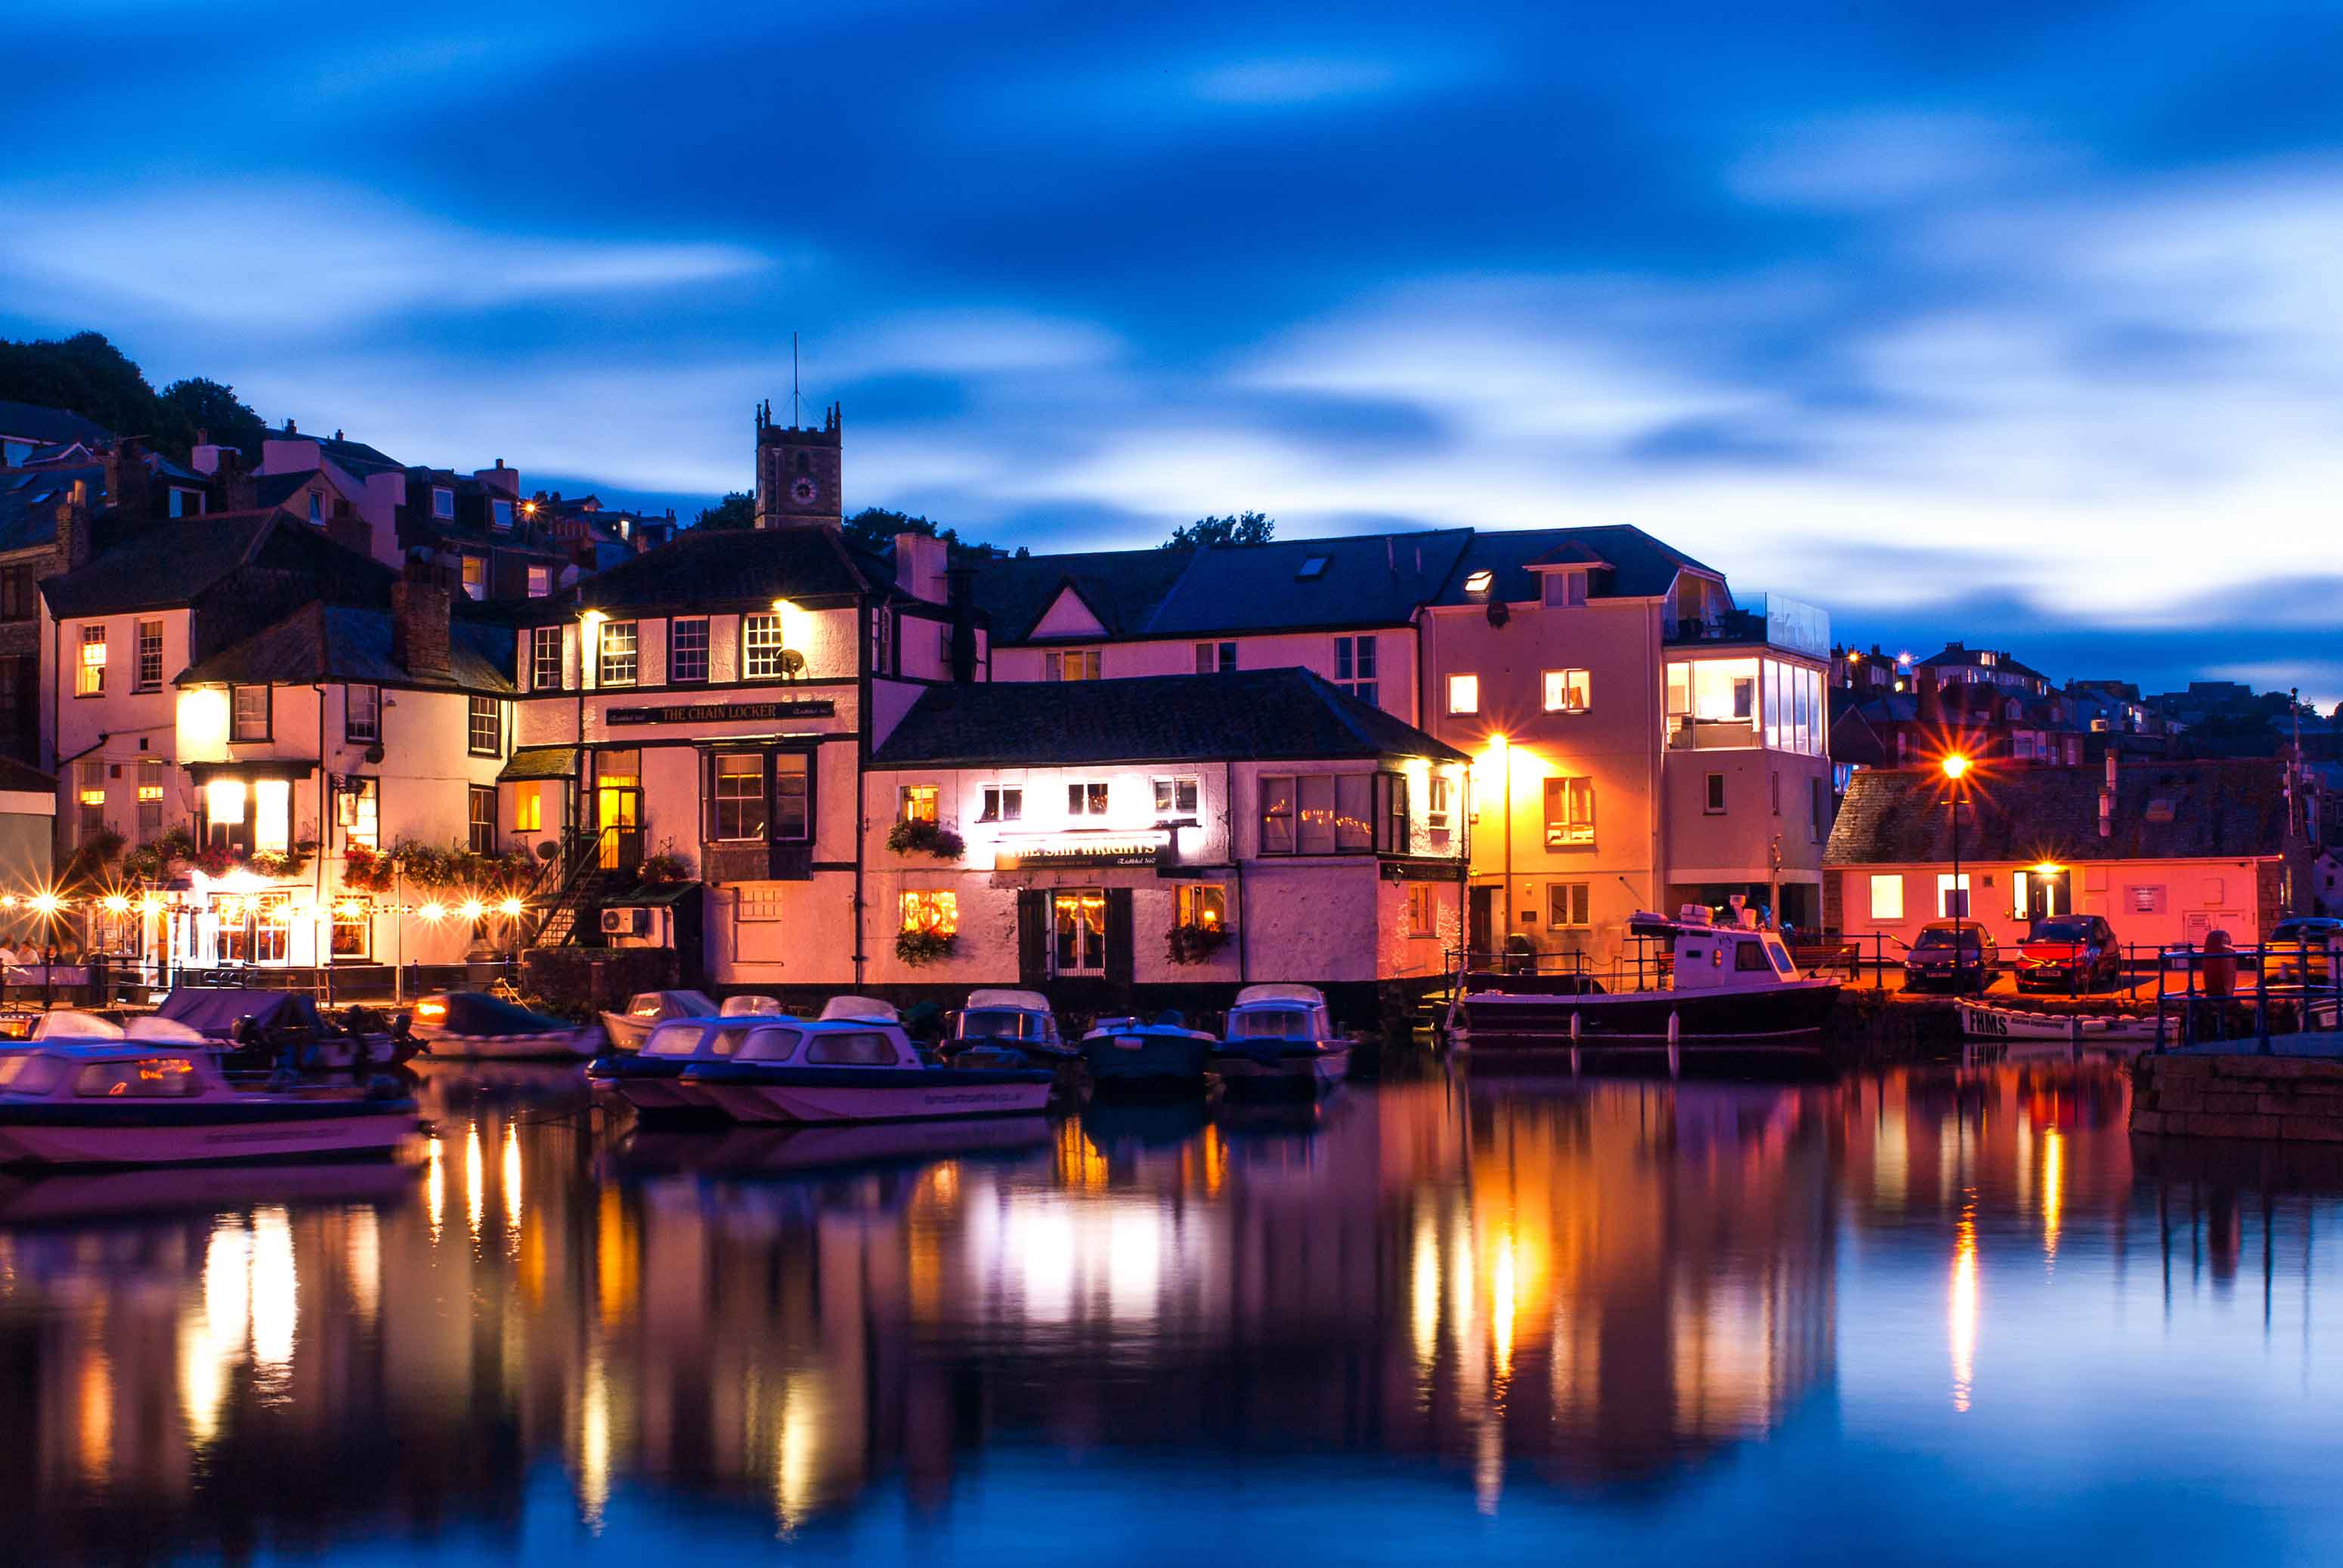 Canva---Waterfront-Pubs-in-Falmouth,Cornwall,-UK.